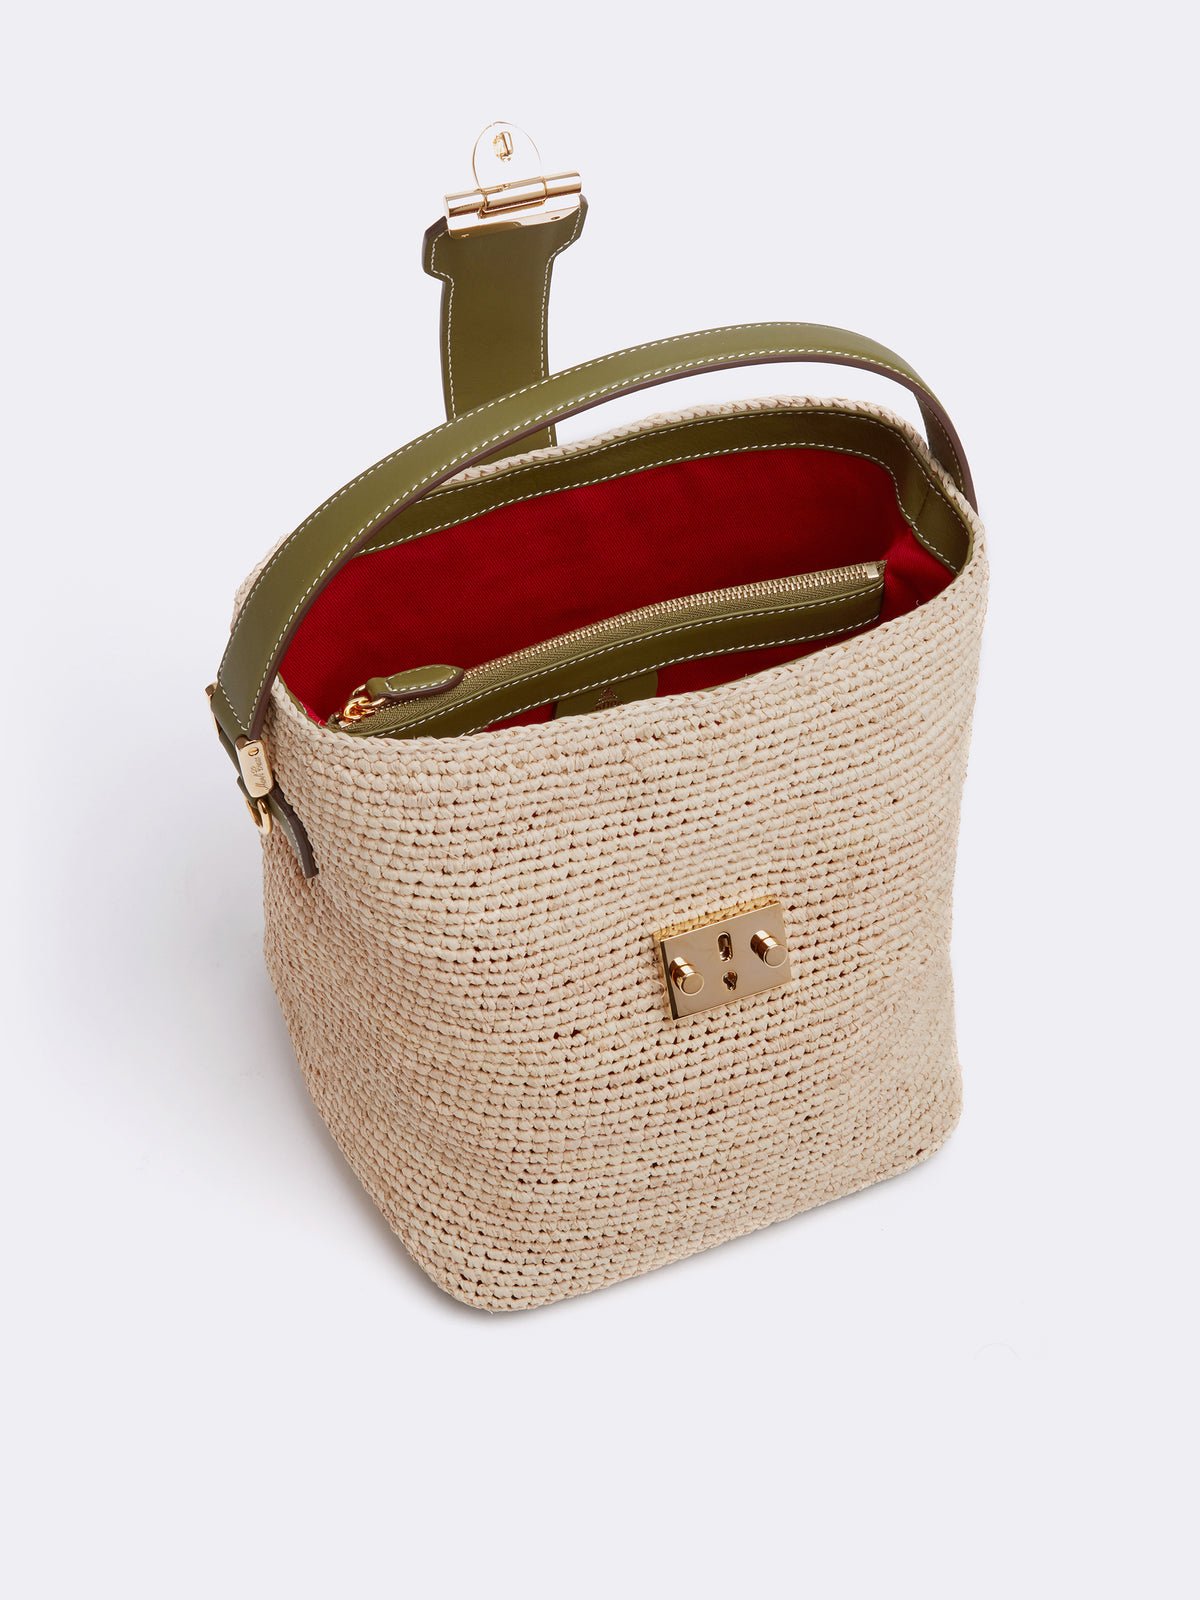 Mark Cross Murphy Raffia & Leather Bucket Bag Tumbled Grain Avocado / Birdseye / Natural Raffia Interior